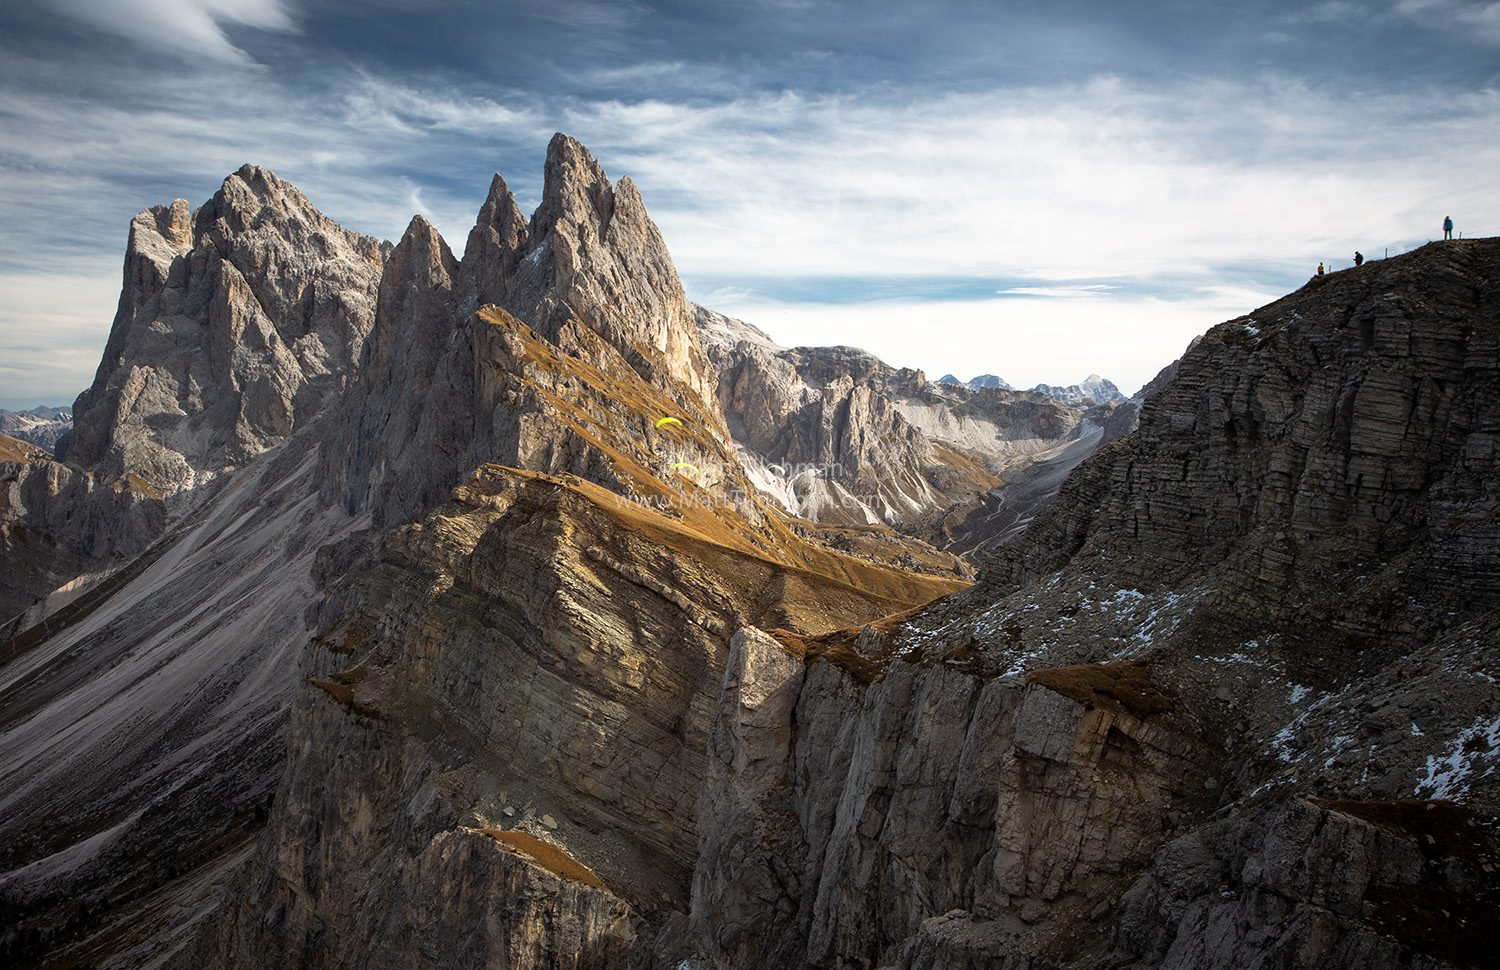 Fine art photograph of Seceda Mountain in the Italian Dolomites. Celebrating the end of tourist season, three locals take their paragliders to the sky.